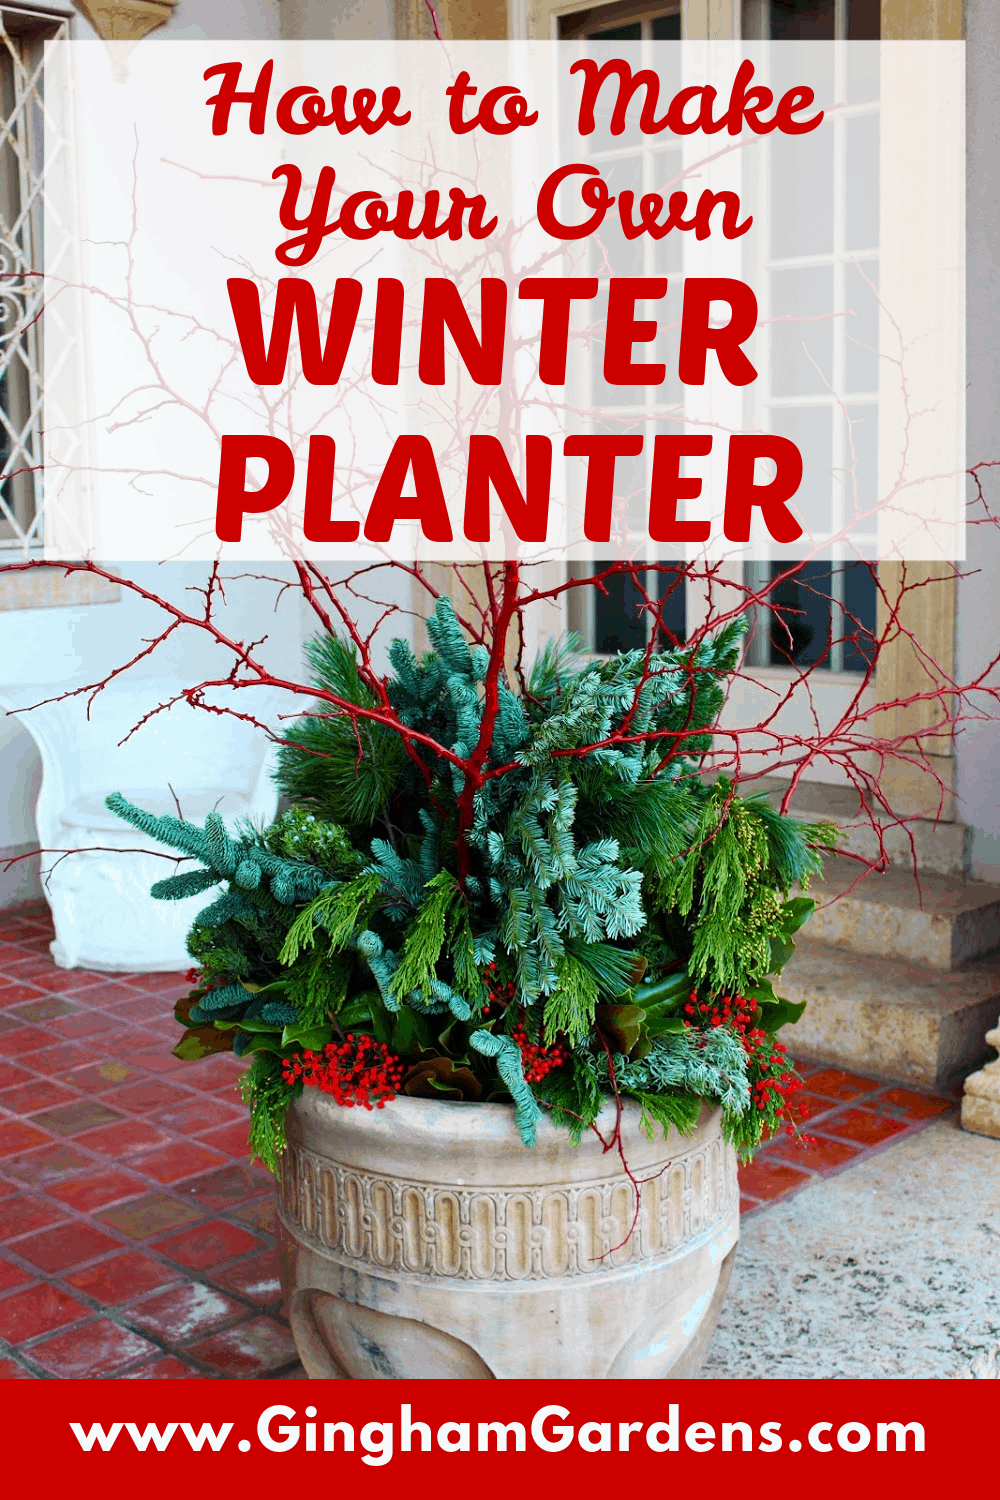 Image of a Winter with Text Overlay - How to Make a Winter Planter